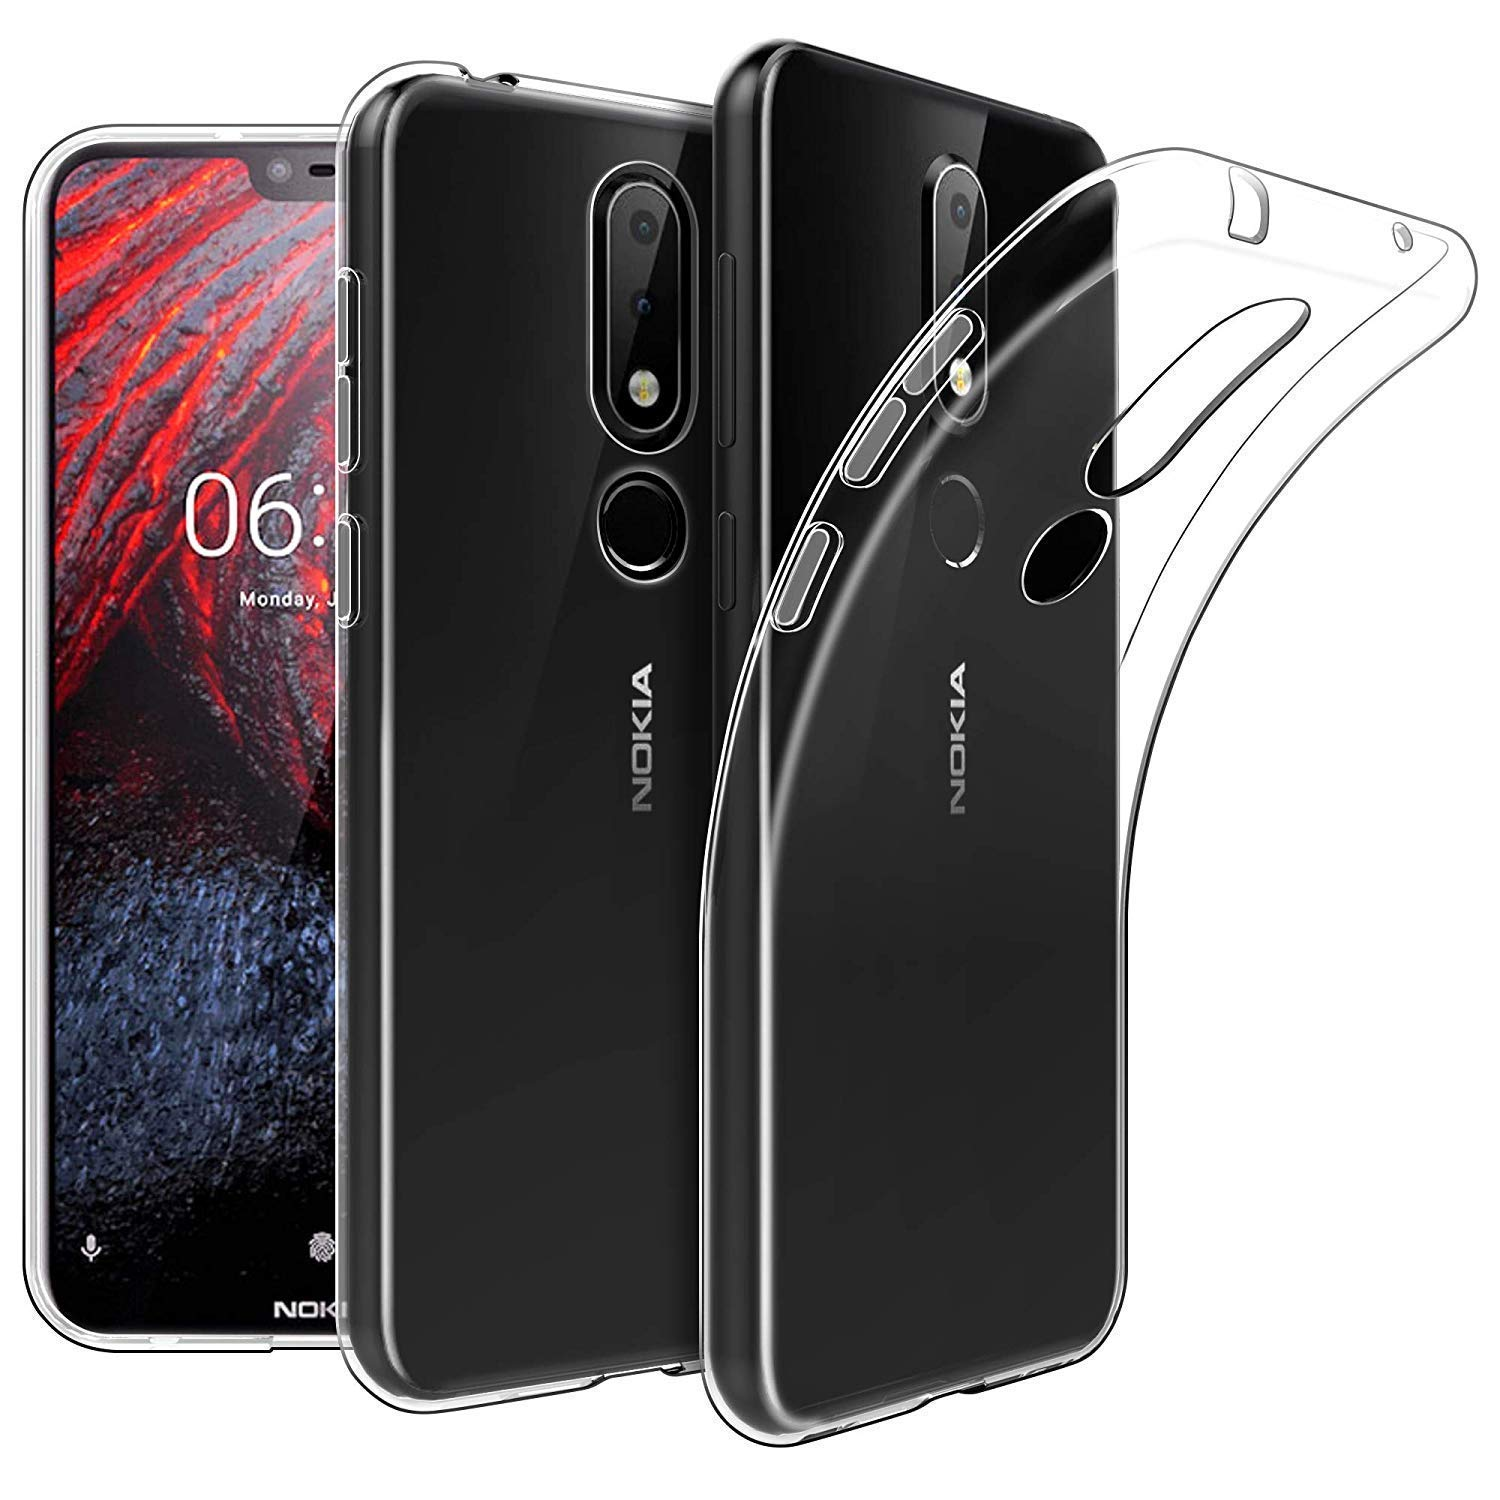 the latest fdfce d13fa Febelo Nokia 6.1 Plus Case, Premium Quality Ultra Thin Transparent  Exclusive Soft Back Cover for Nokia 6.1 Plus